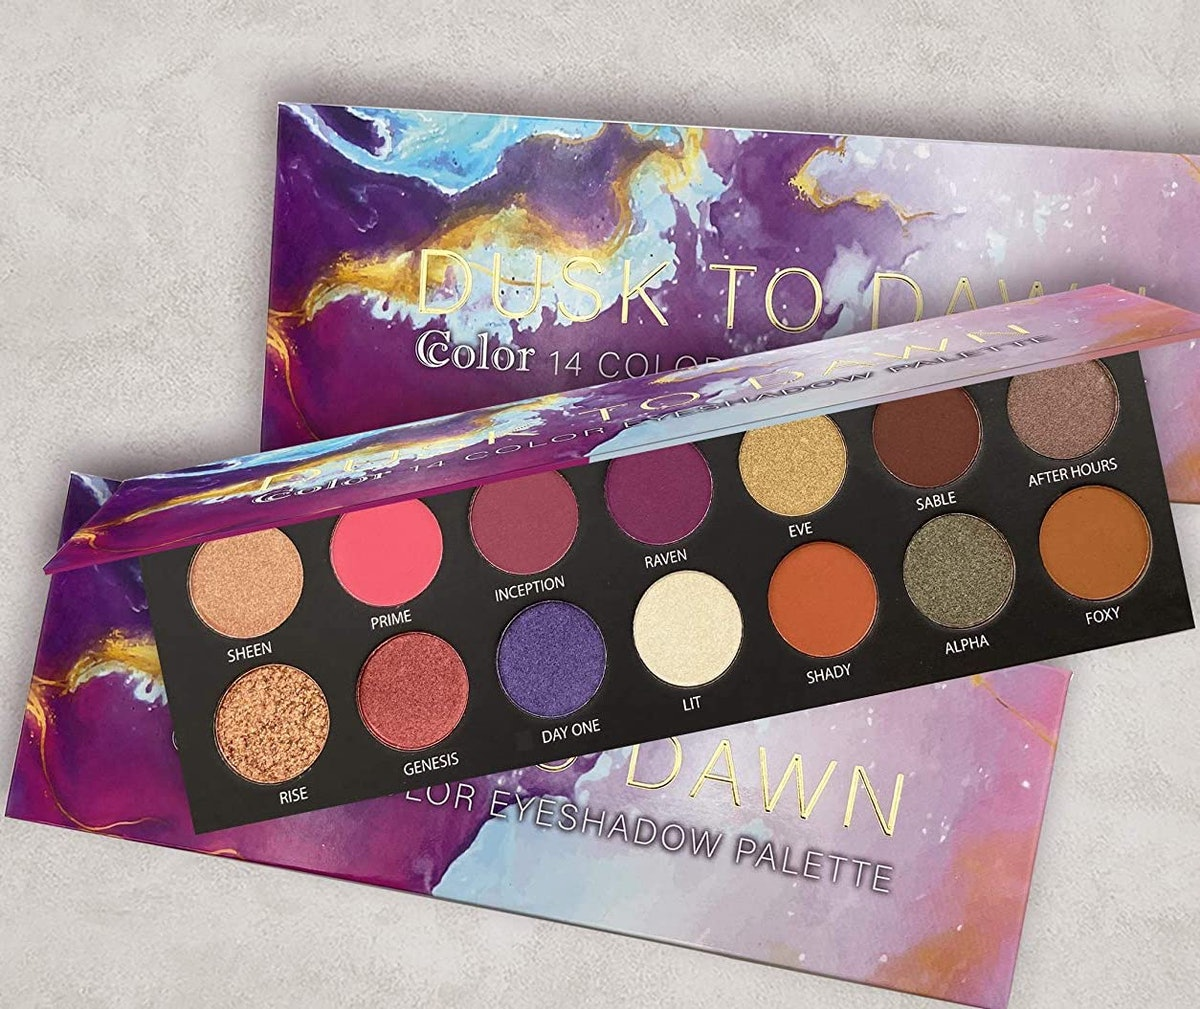 Ccolor 14 Color Eyeshadow Palette Dusk To Dawn